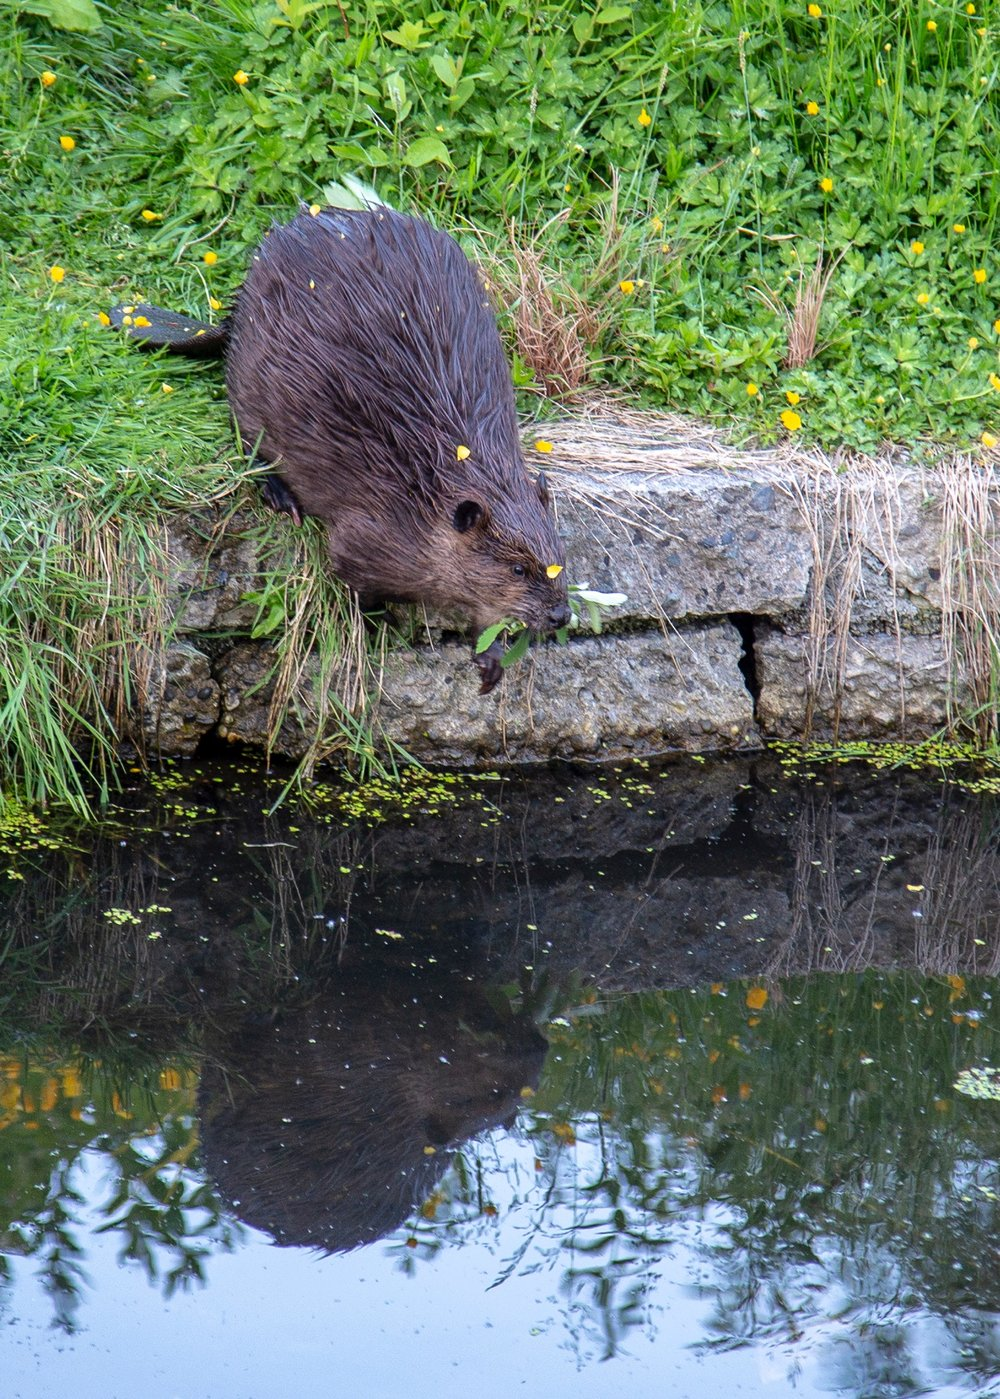 A rare view of one of the beavers out of the water.